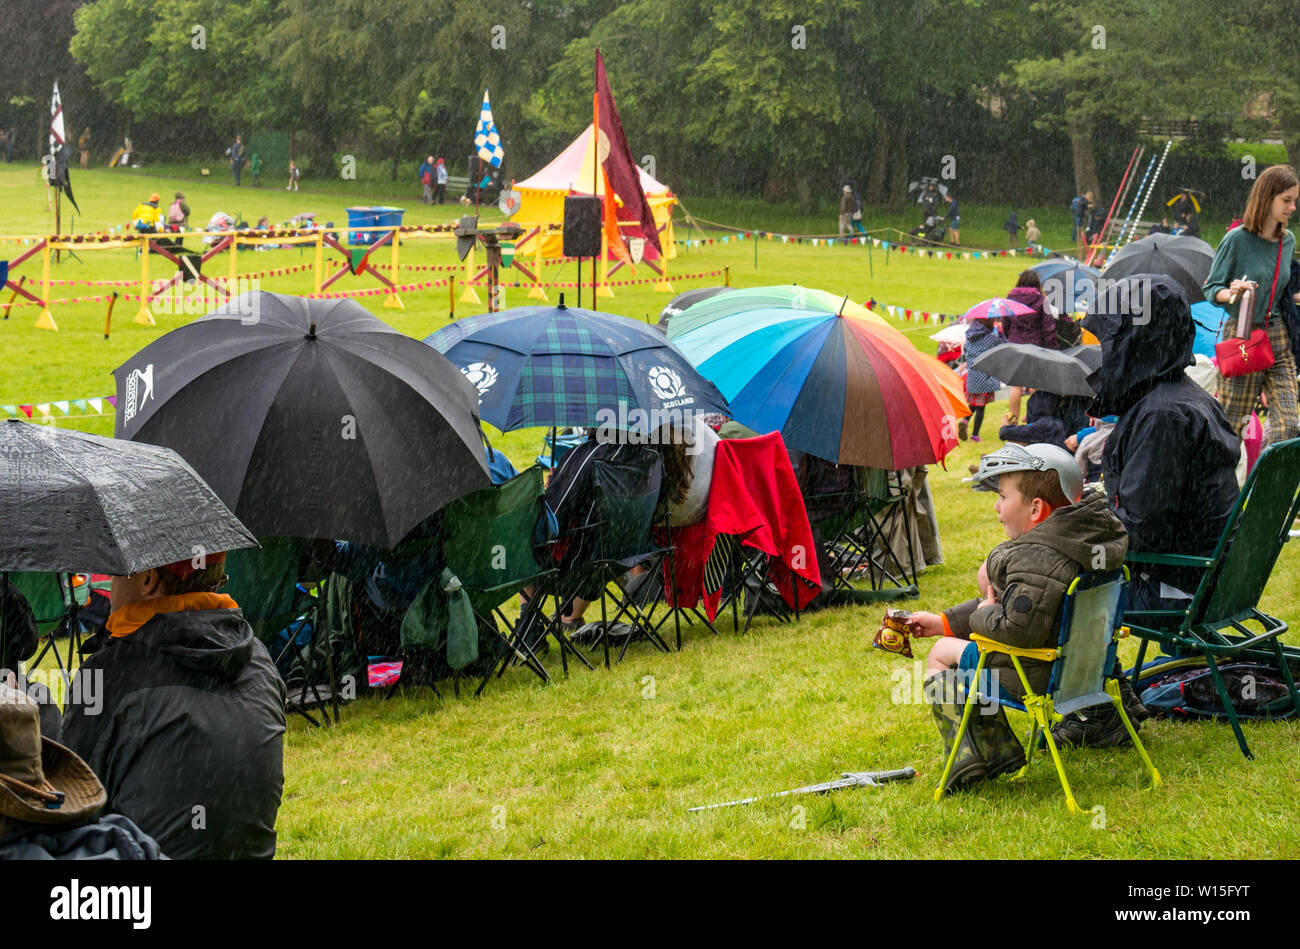 Linlithgow Palace, West Lothian, Scotland, UK. 30th June 2019.  UK Weather: A heavy rain shower soaked event goers to the jousting at Linlithgow Palace who shelter under brightly coloured umbrellas Stock Photo